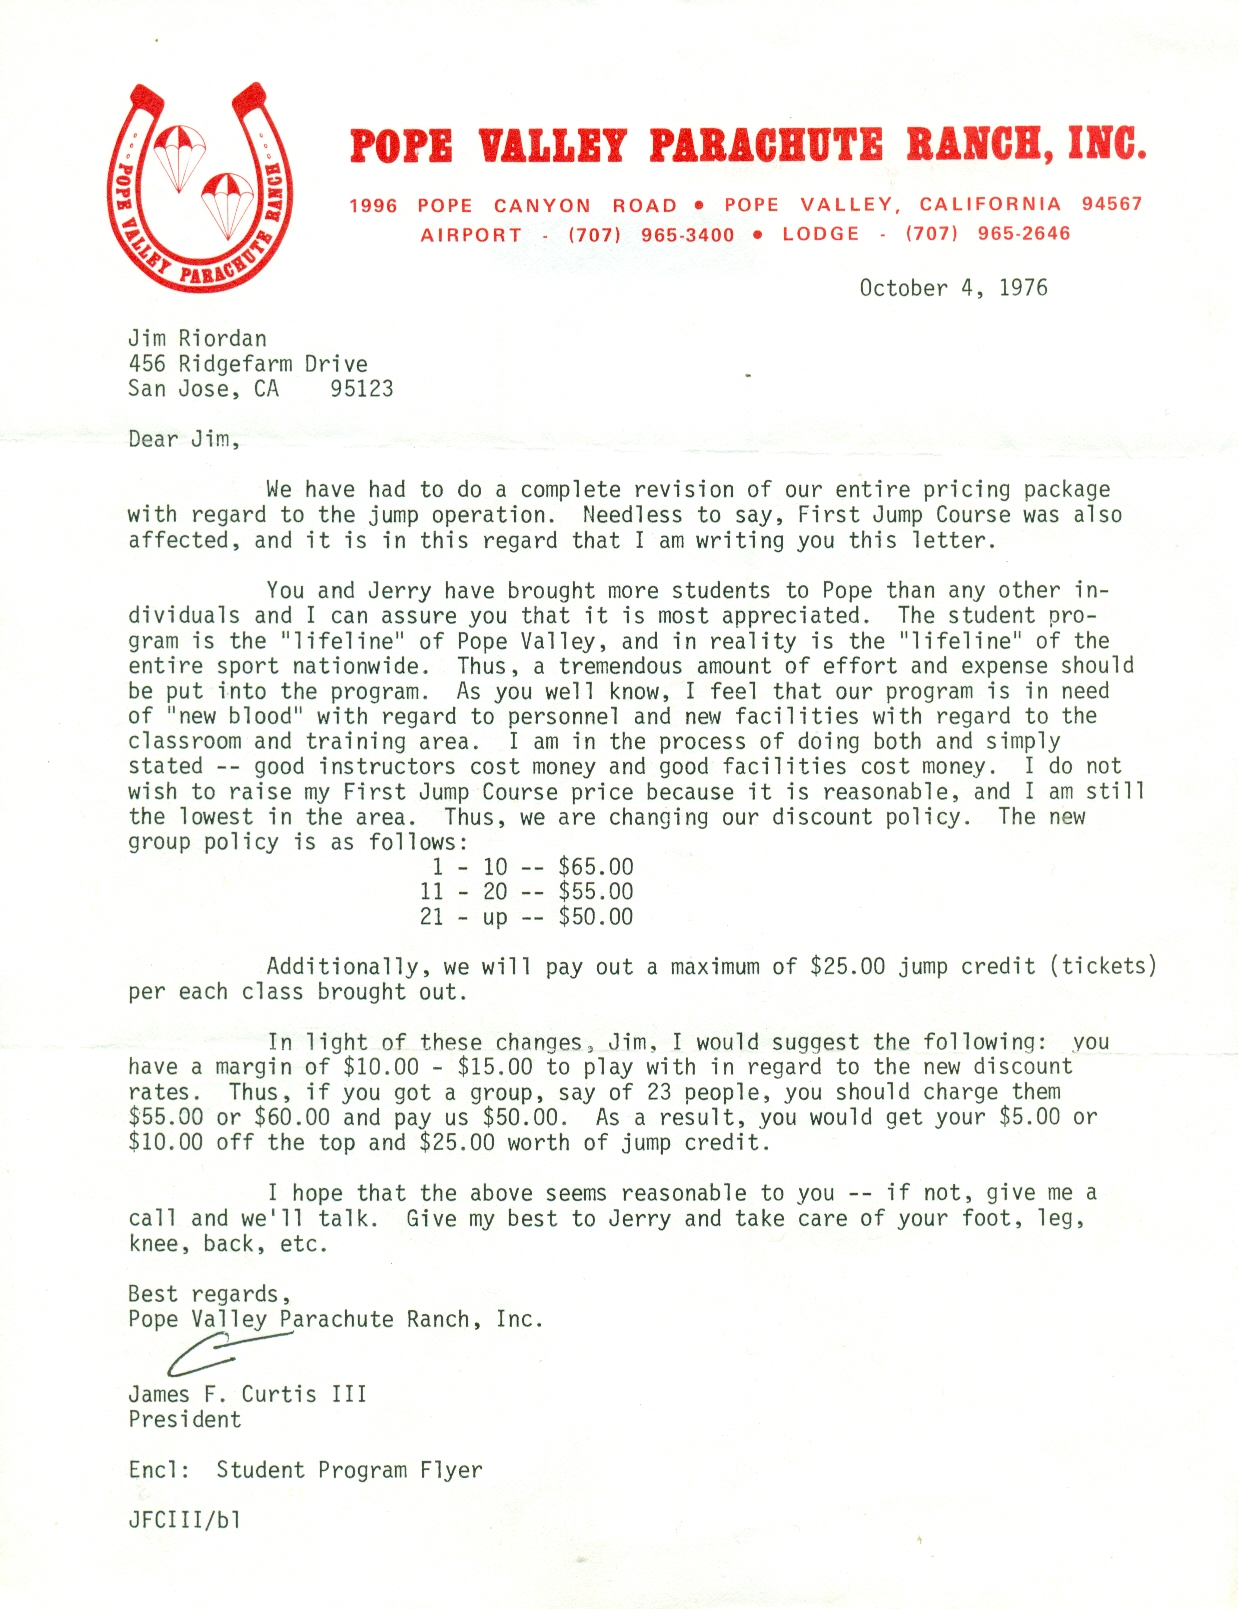 Pope Valley Parachute Ranch, Inc. letter to Jim Riordan